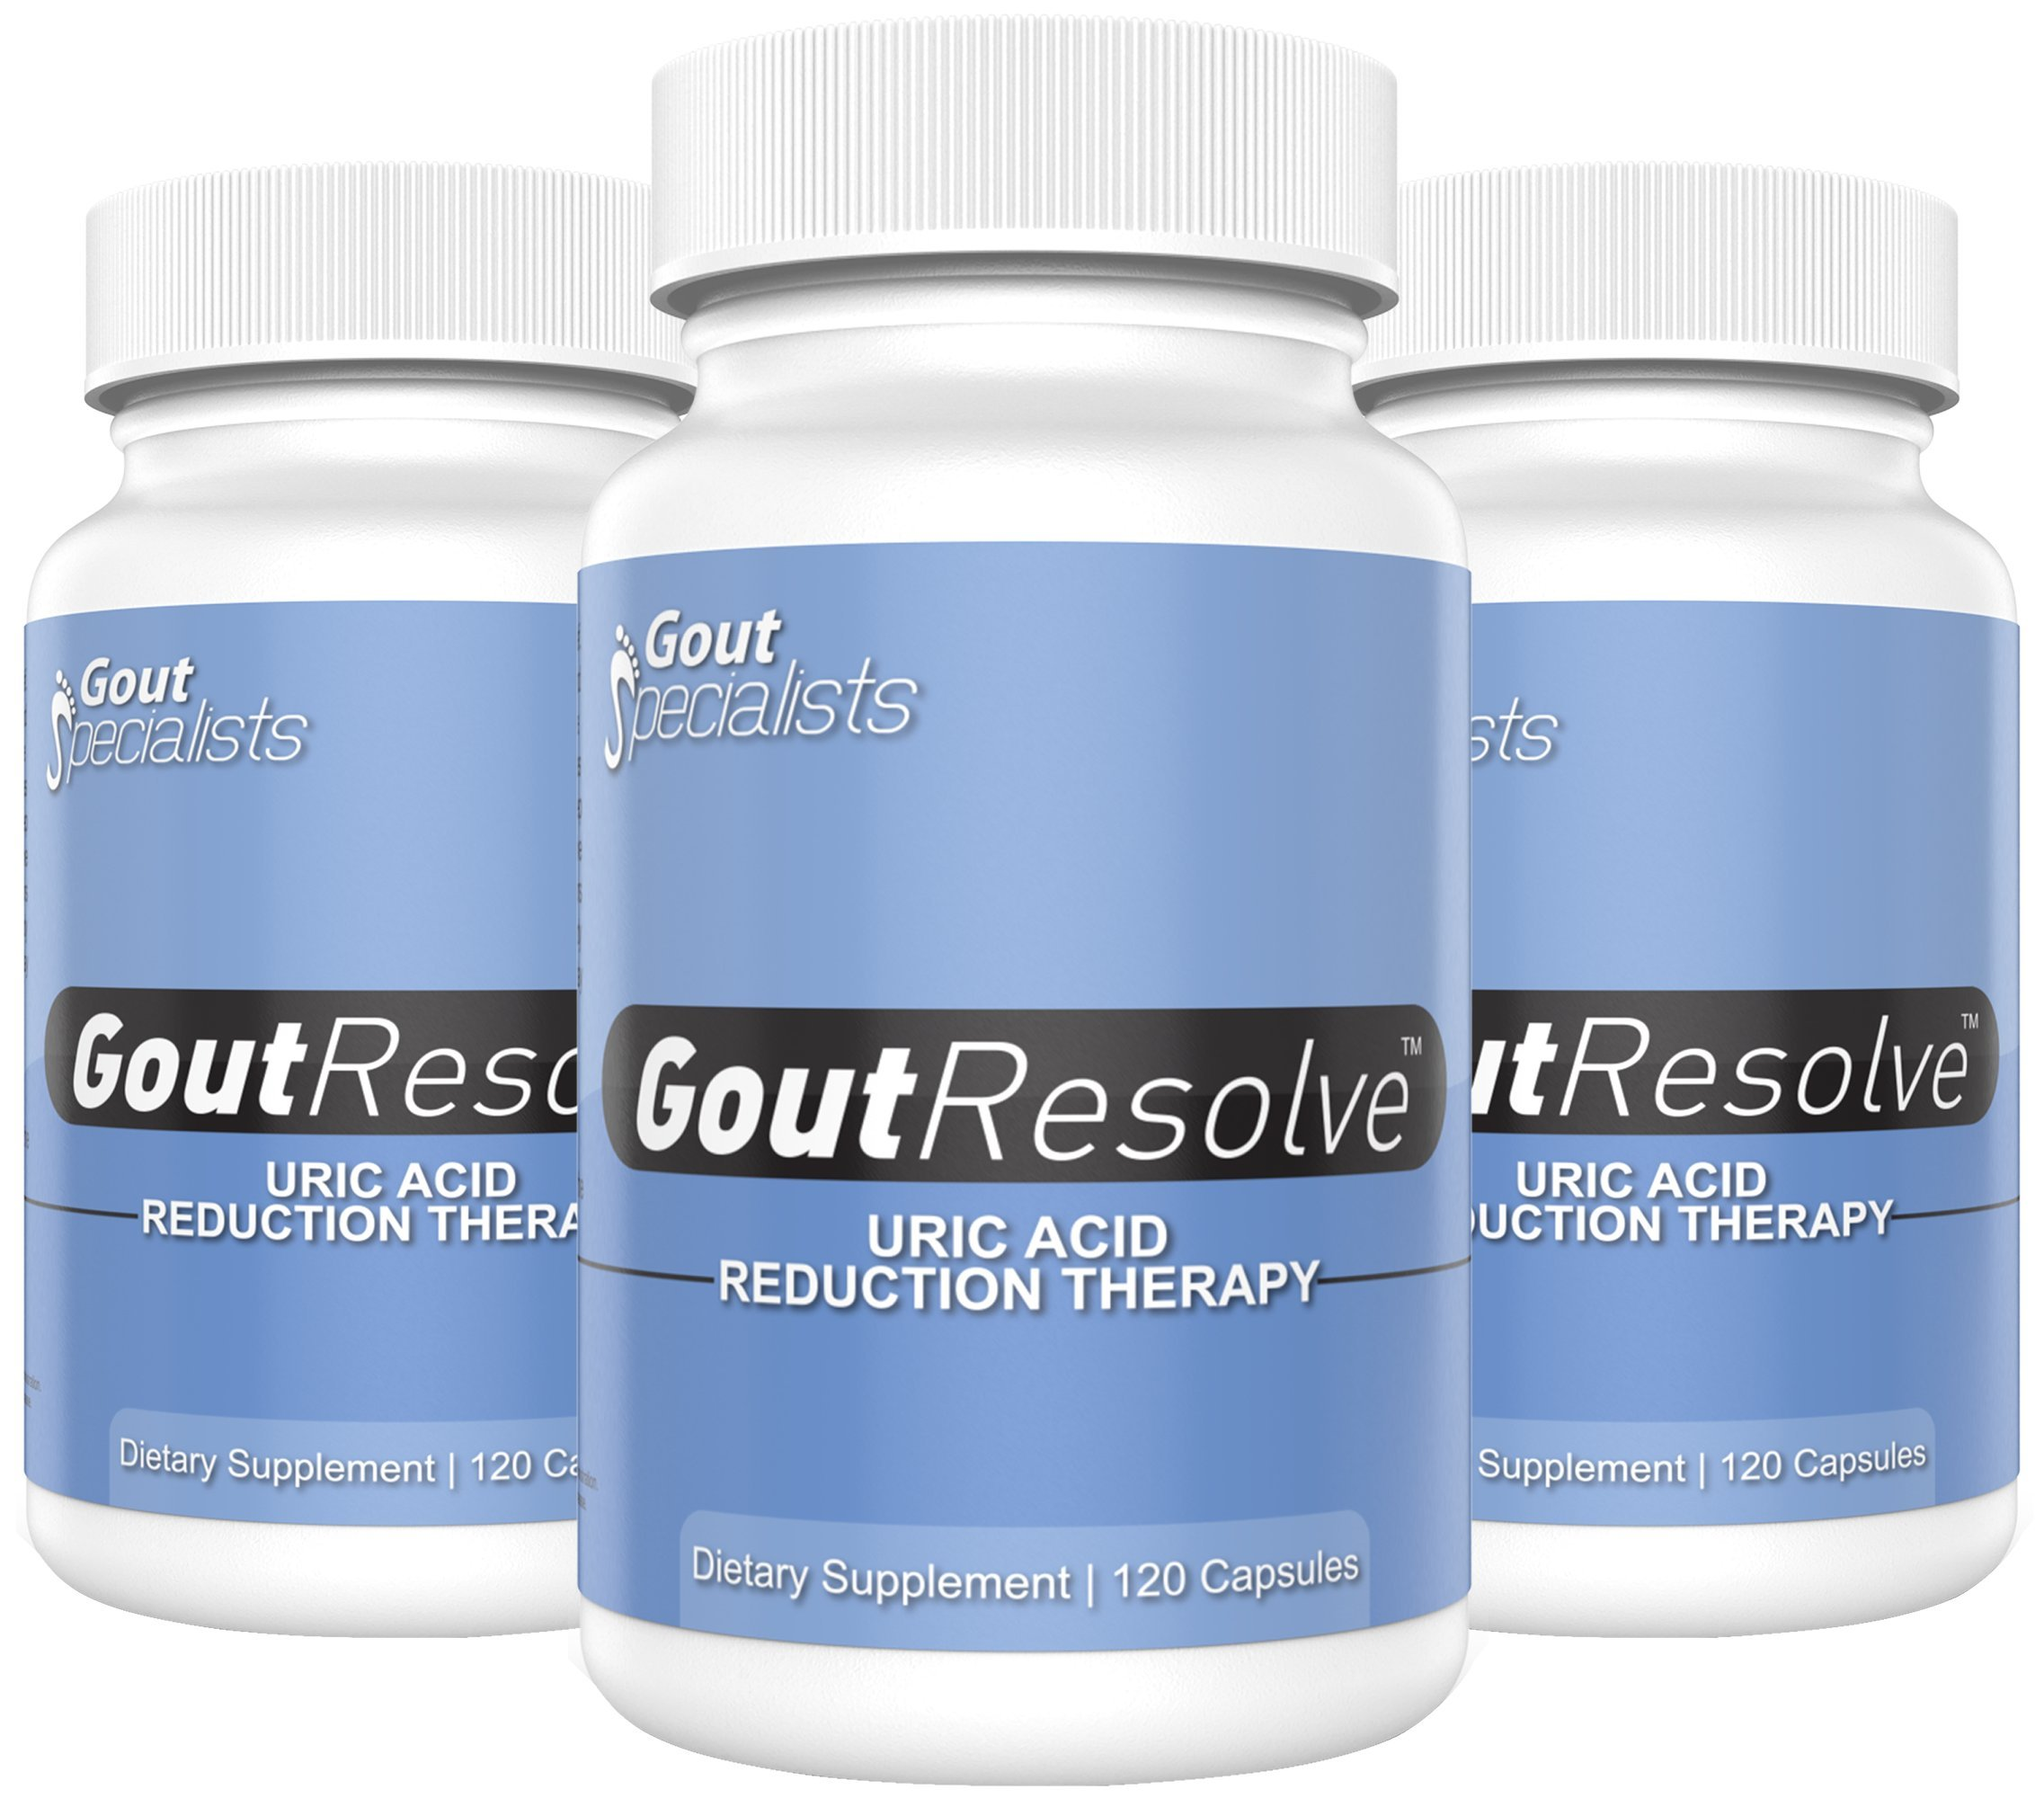 Uric Acid Pain Relief - Gout Resolve - Uric Acid Reduction Formula - 3 Pack - All Natural - Helps Promote Healthy Kidney & Liver Function, Supports Reduction of Uric Acid & Gout